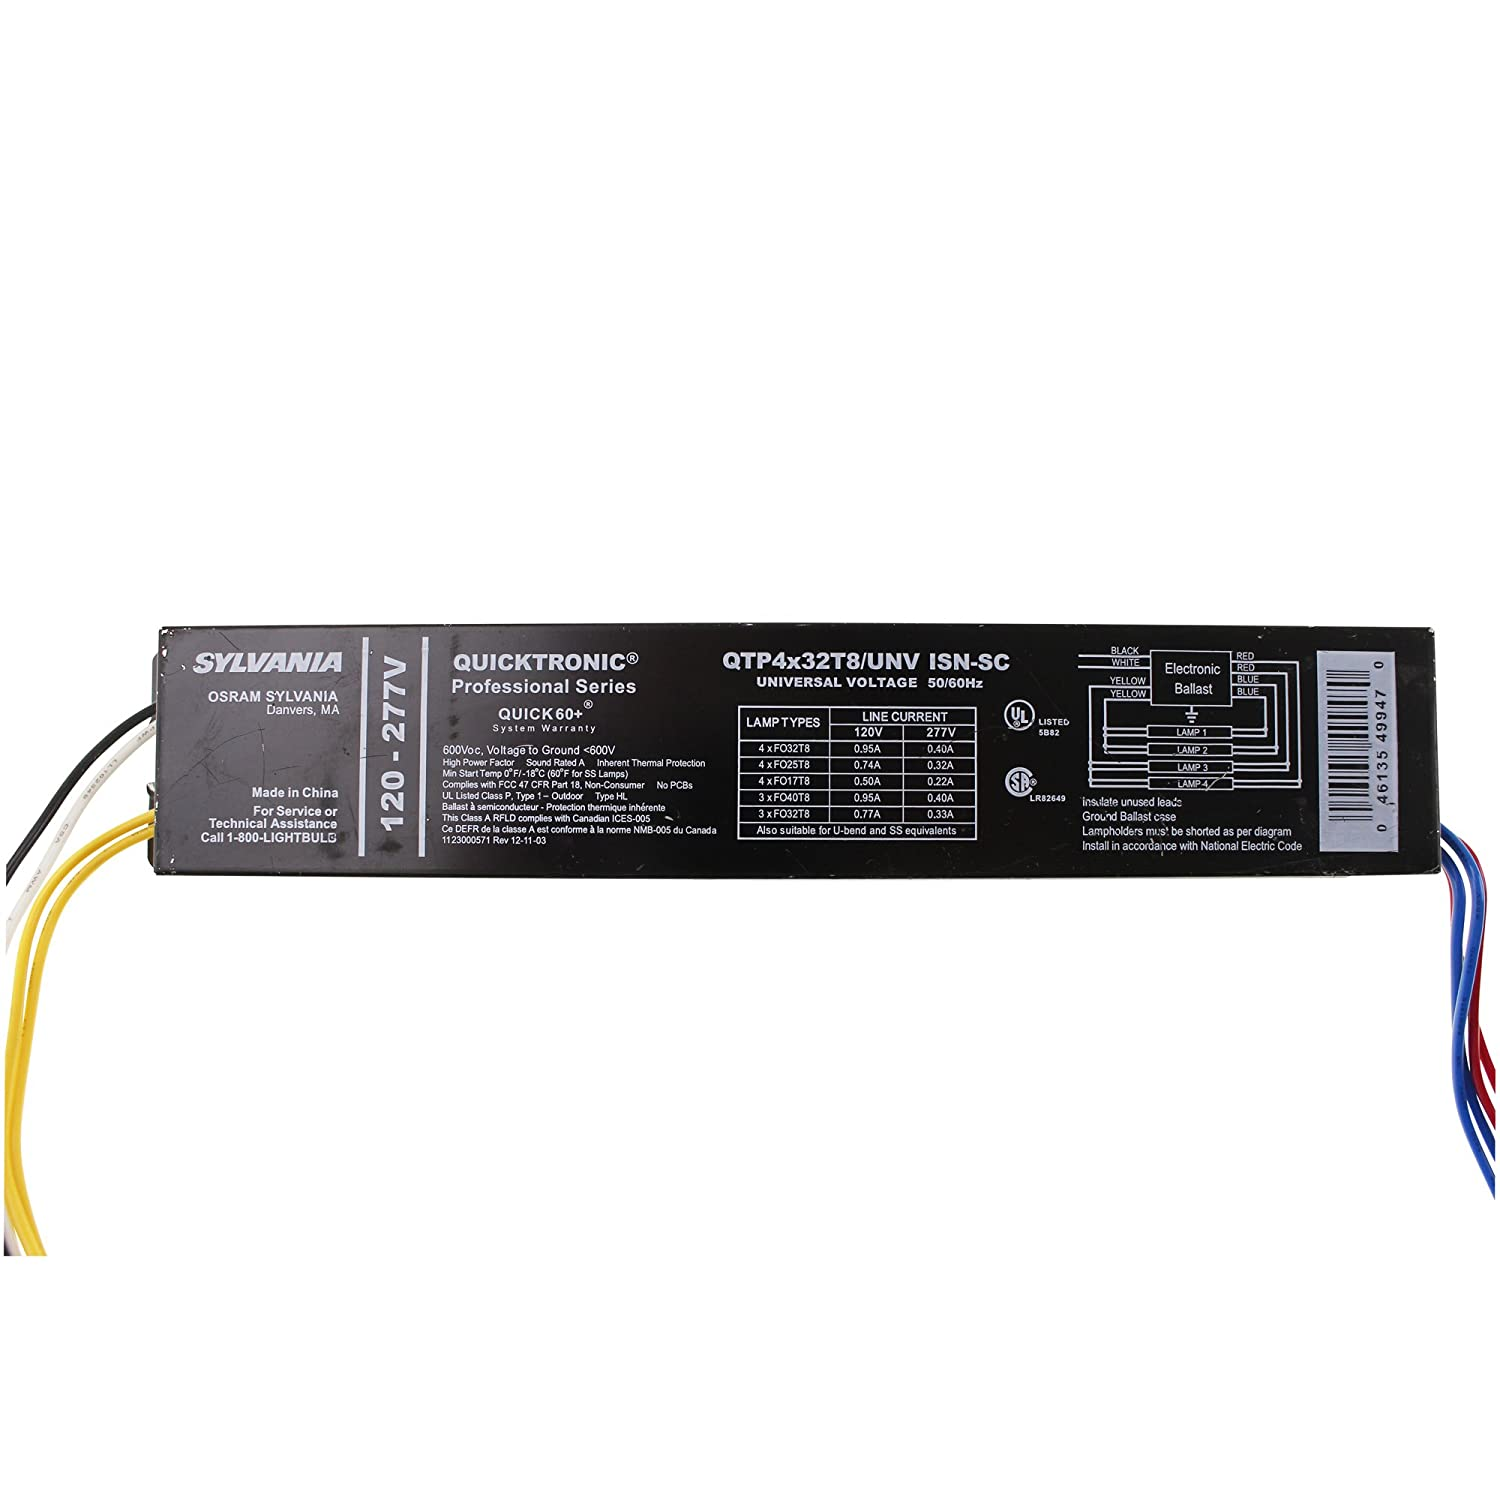 OSRAM SYLVANIA QTP4x32T8/UNV-ISN-SC (49947) 4 FLUORESCENT  Ballasts-Fluorescent-HID - Electrical Ballasts - Amazon.com